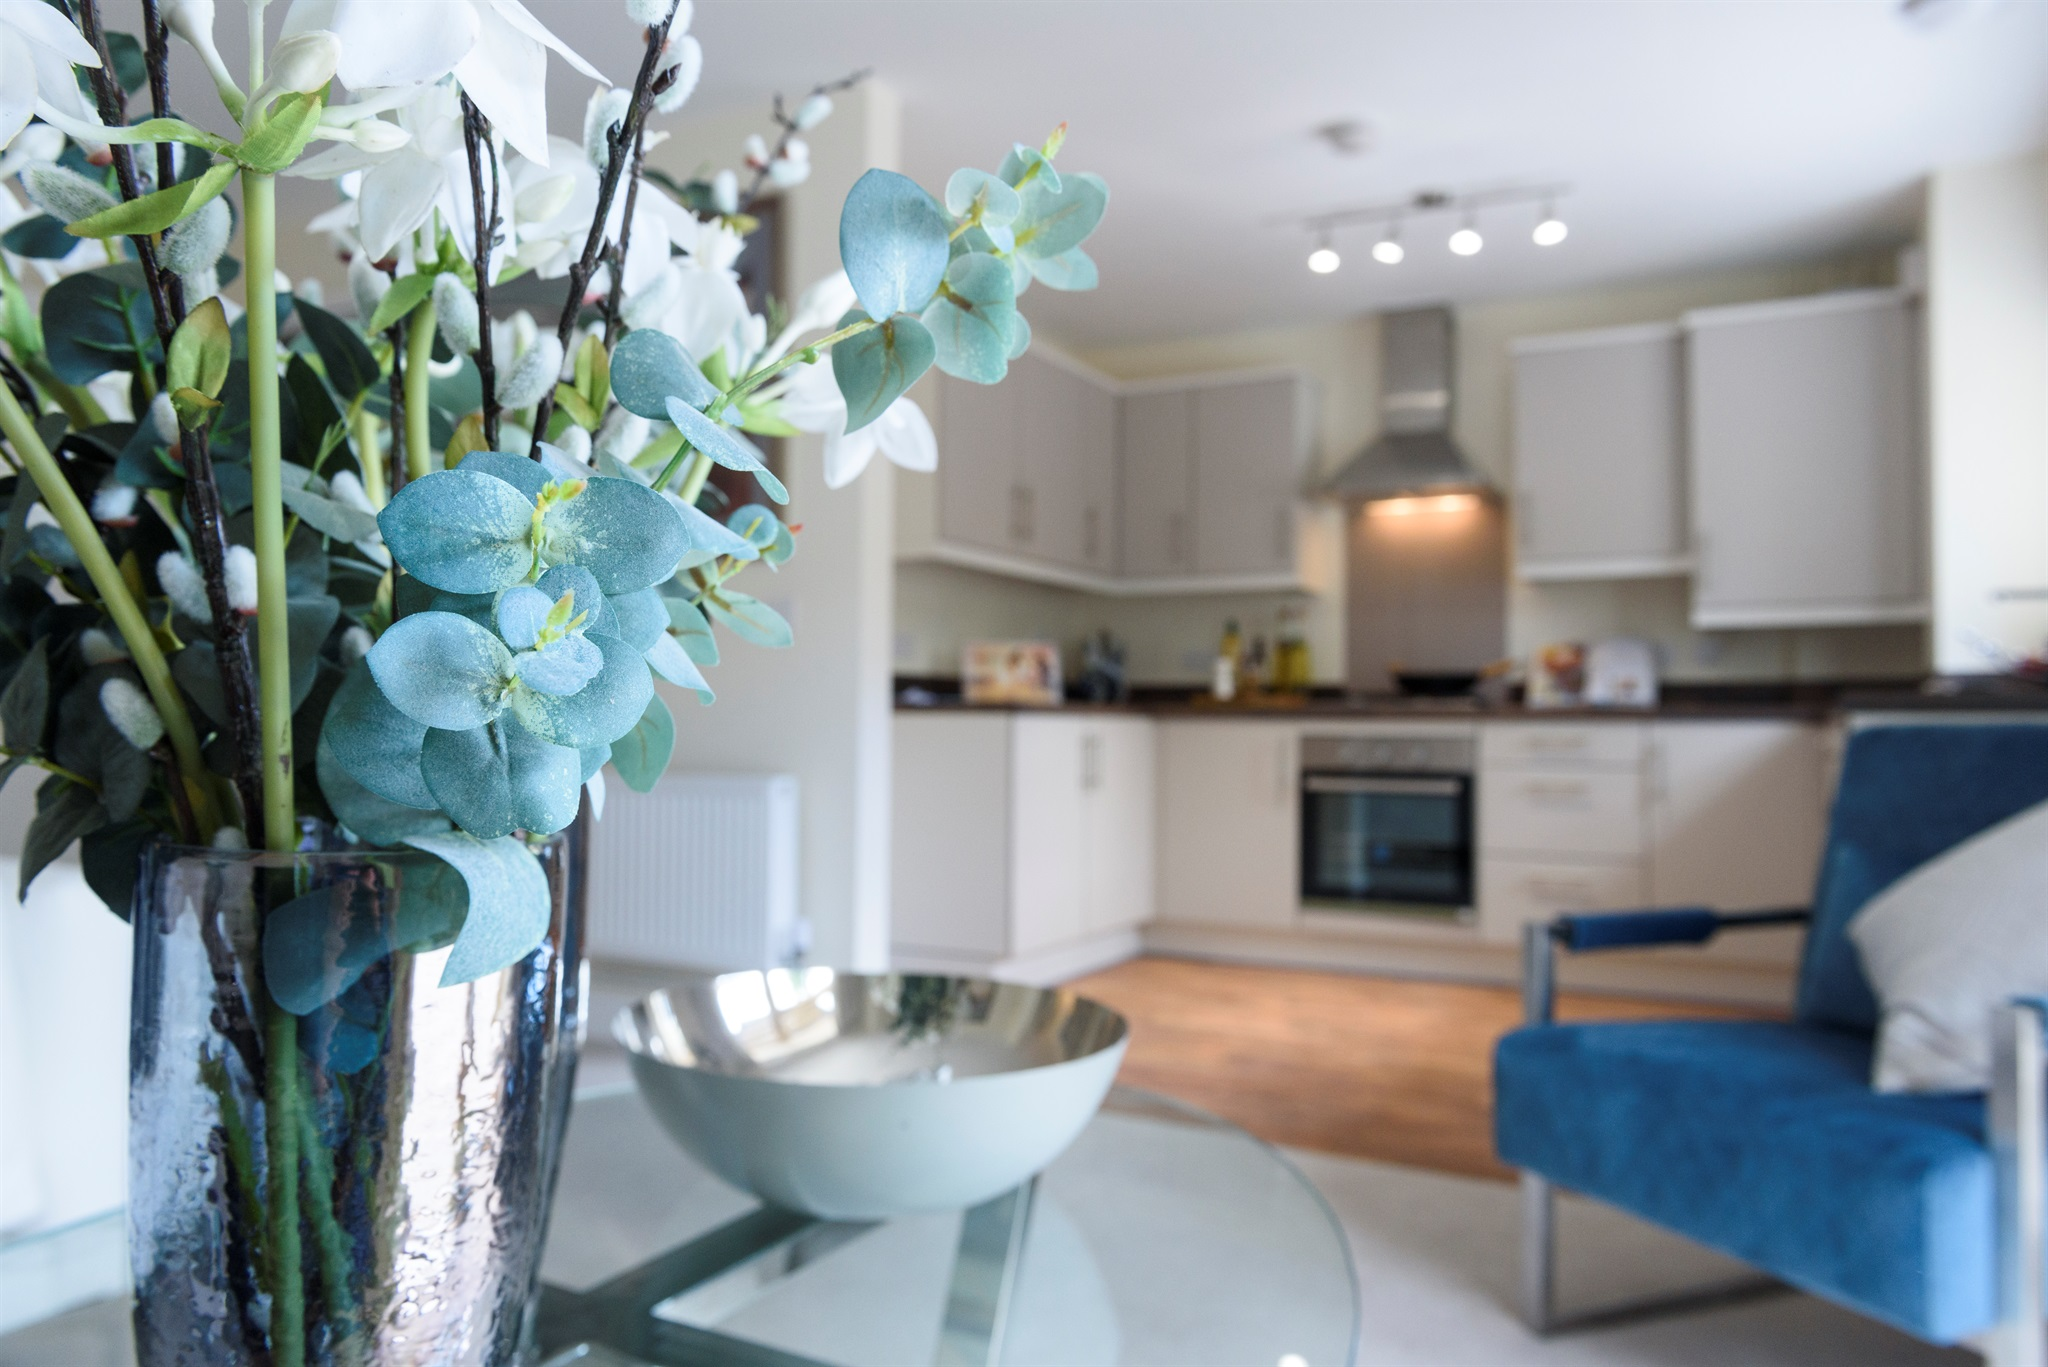 Victoria Road, Winchester SO23, 2 bedroom flat for sale - 47104484 ...